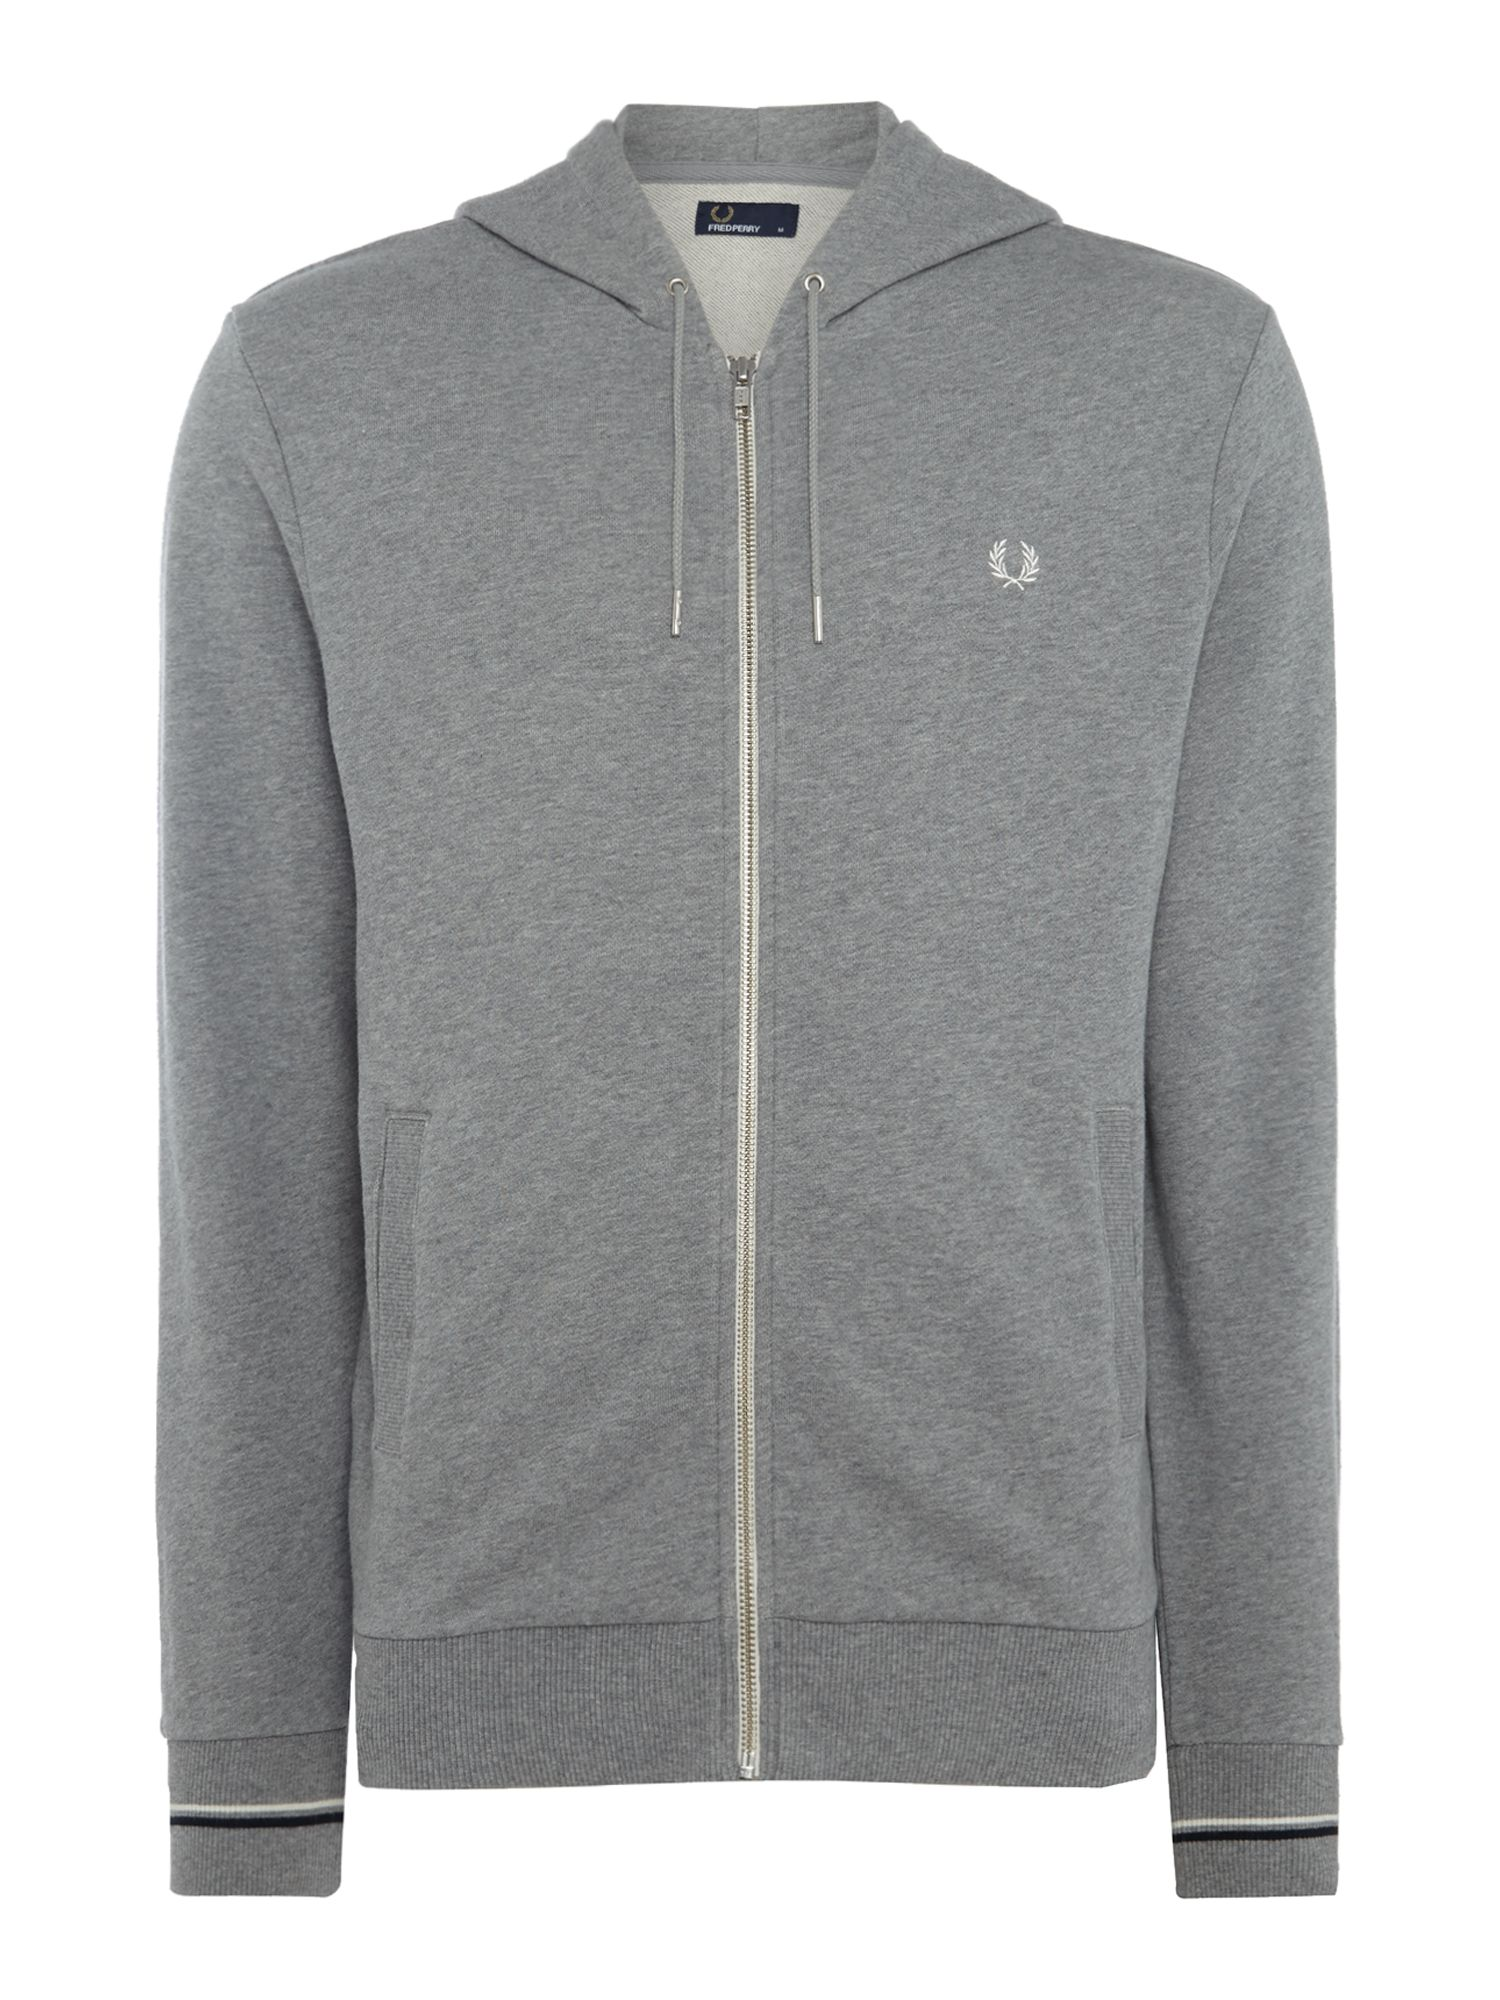 Men's Fred Perry Hooded sweatshirt, Grey